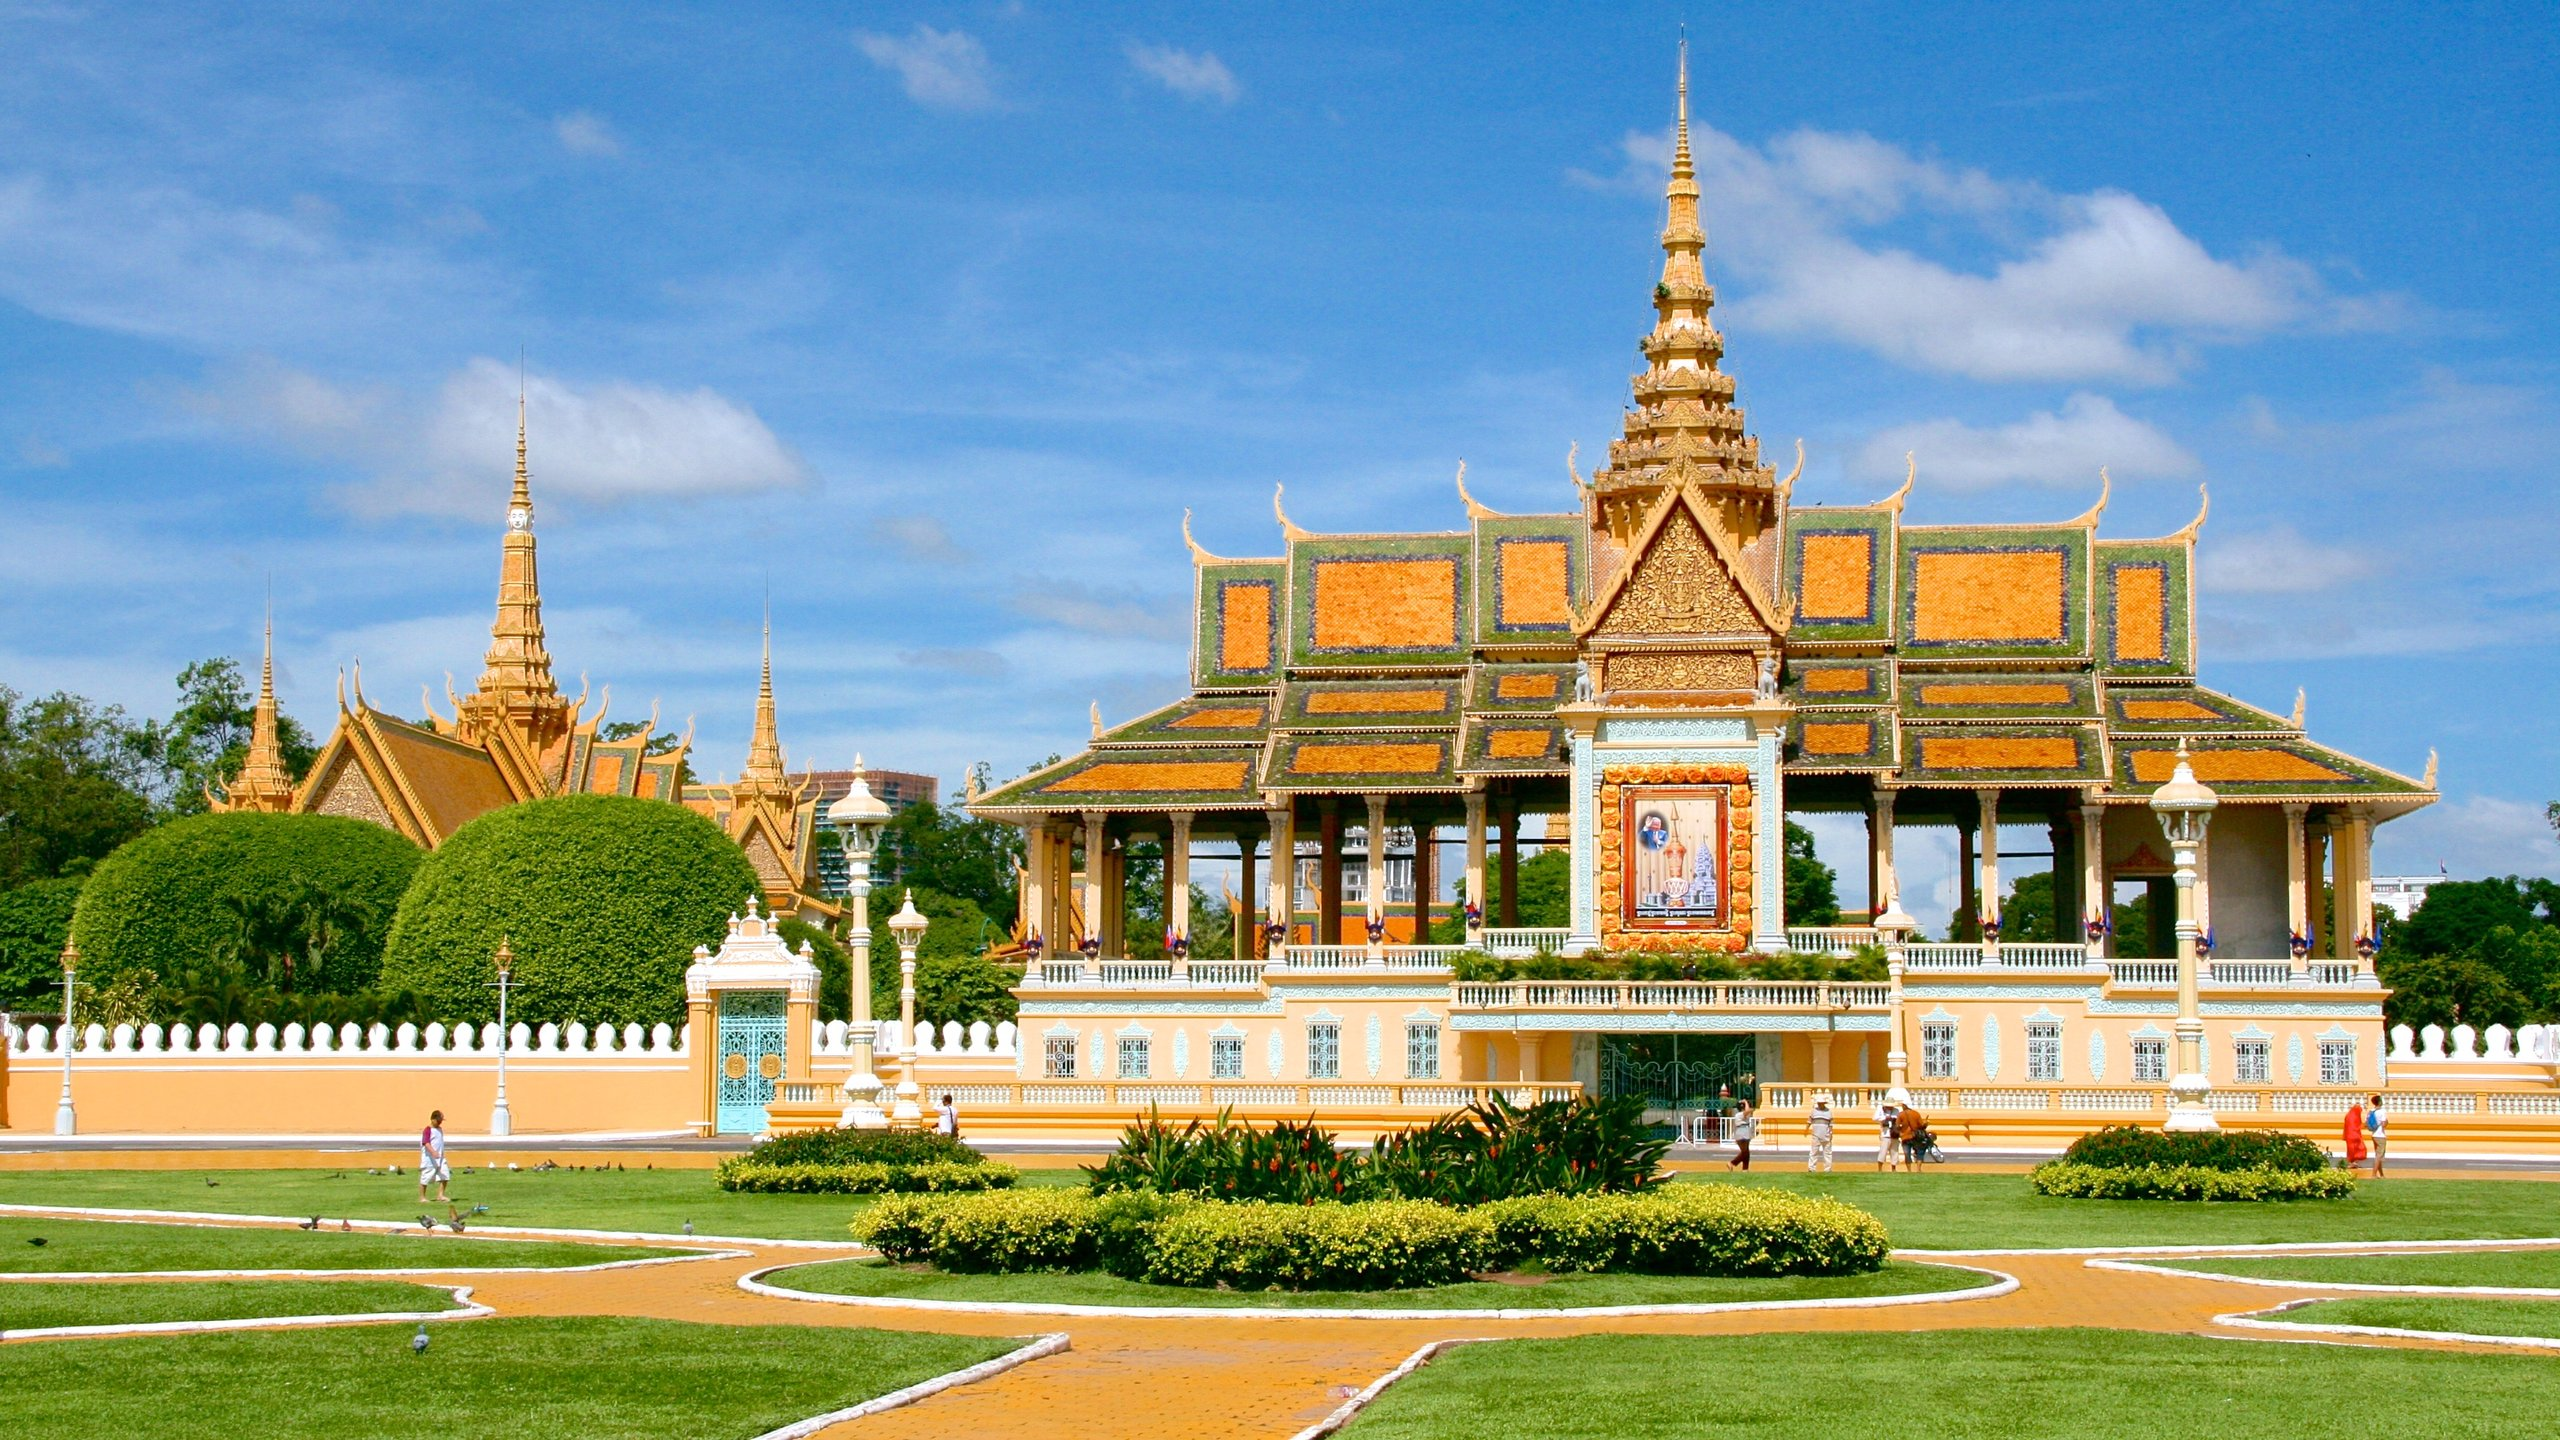 Befitting the home of Cambodia's royalty, the glittering golden roofline of this palace dominates Phnom Penh's skyline.